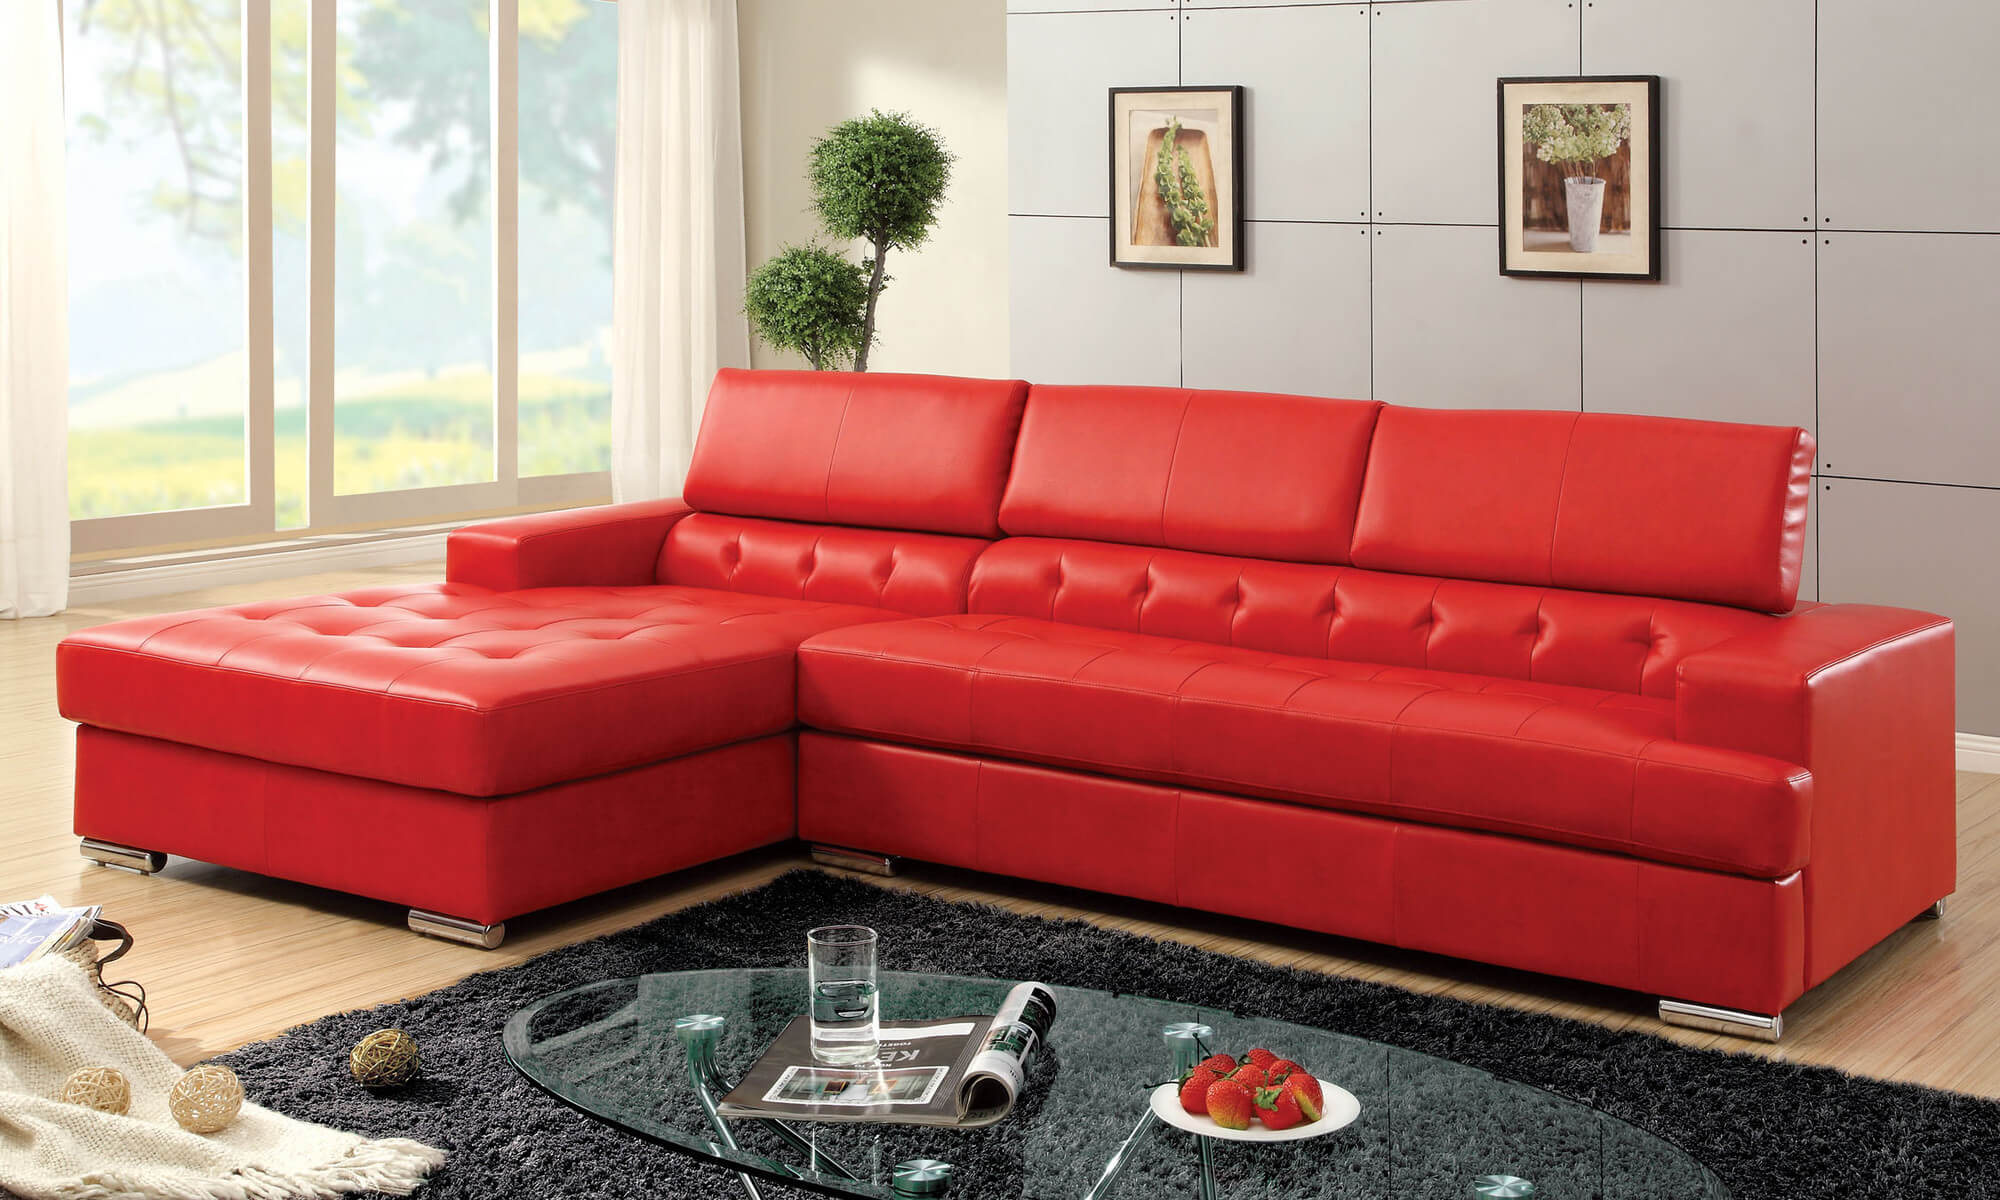 Hokku designs red leather sectional with partially tufted upholstery